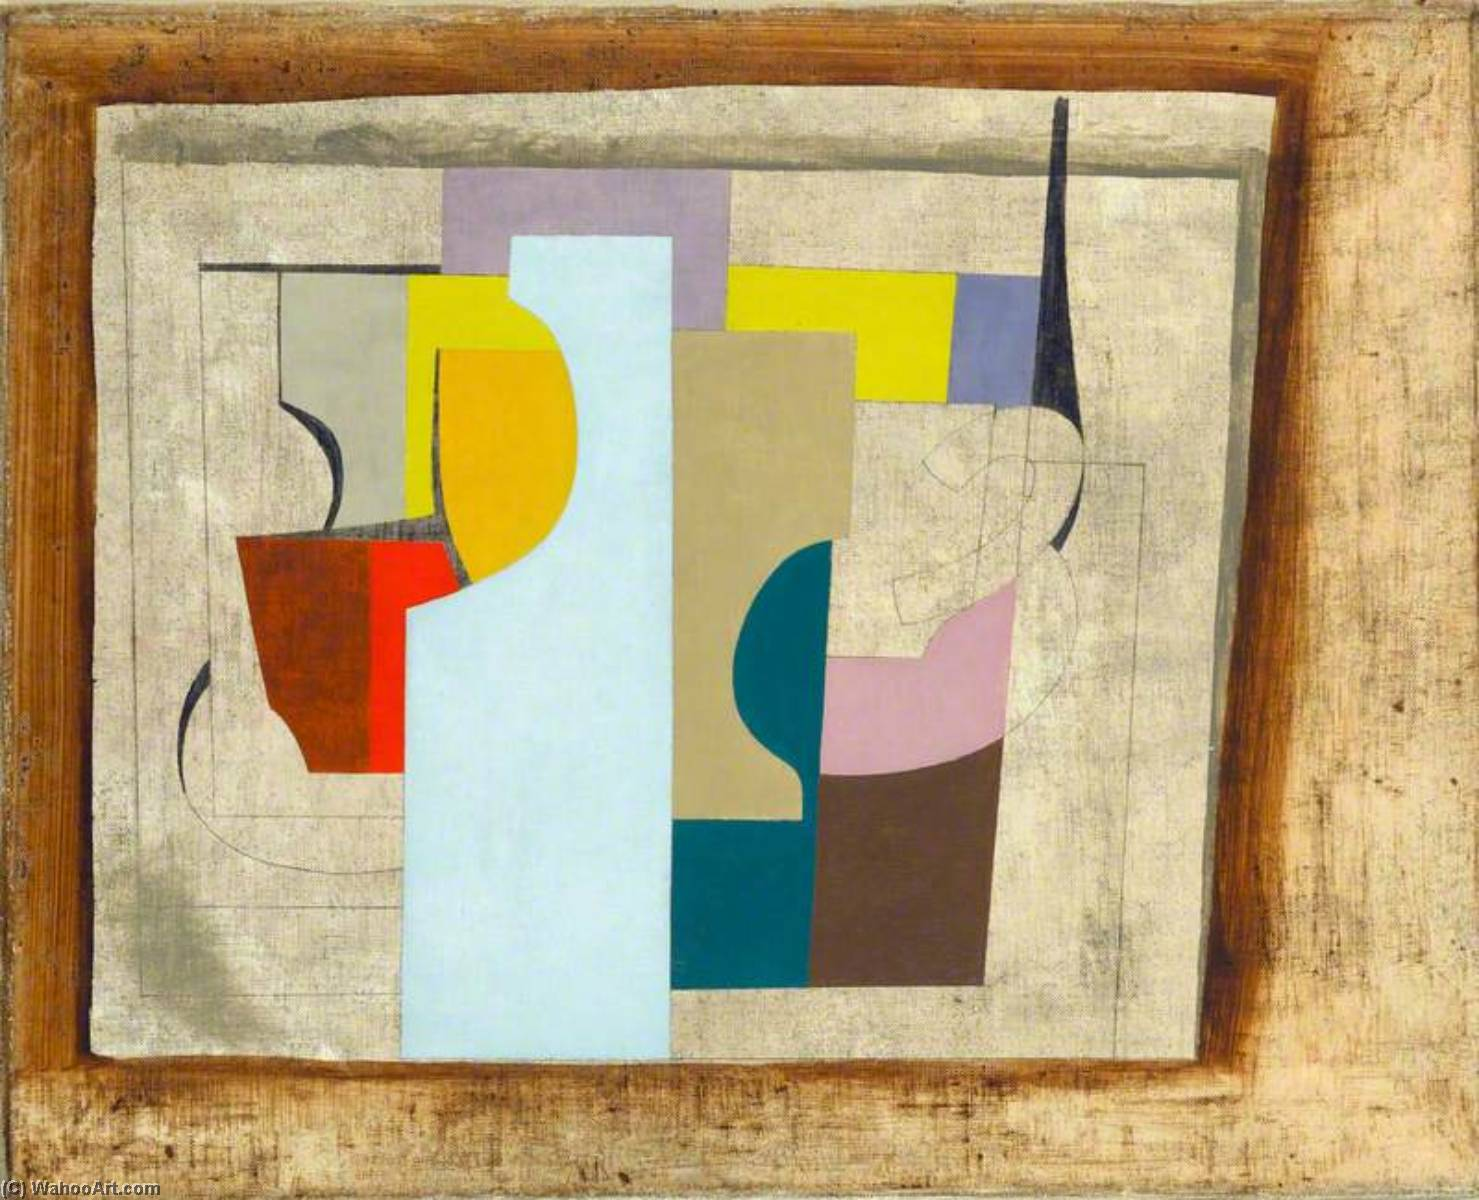 1946 (still life), Pen by Ben Nicholson (1894-1982, United Kingdom)